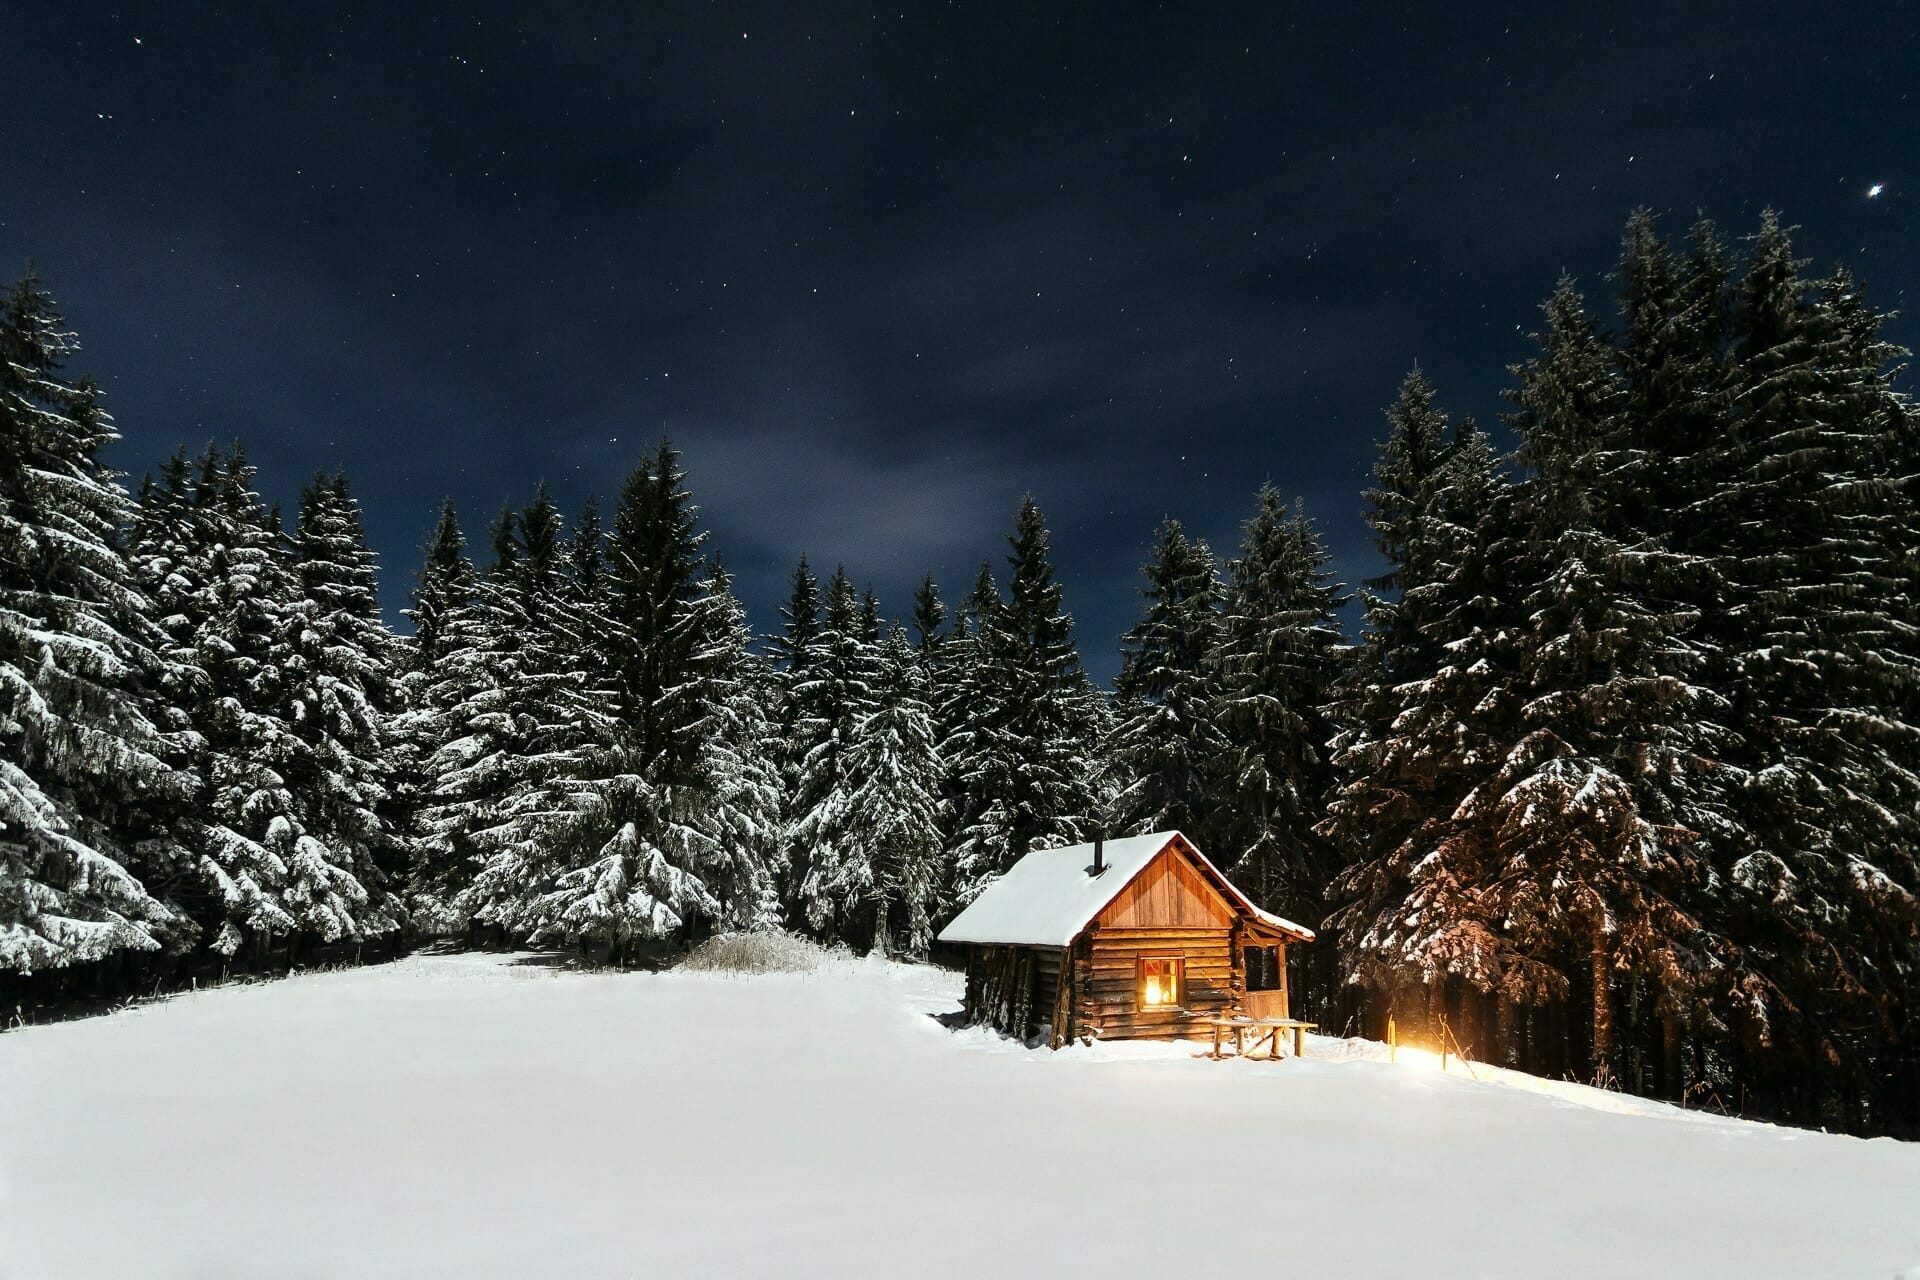 picture of house in snowy forrest